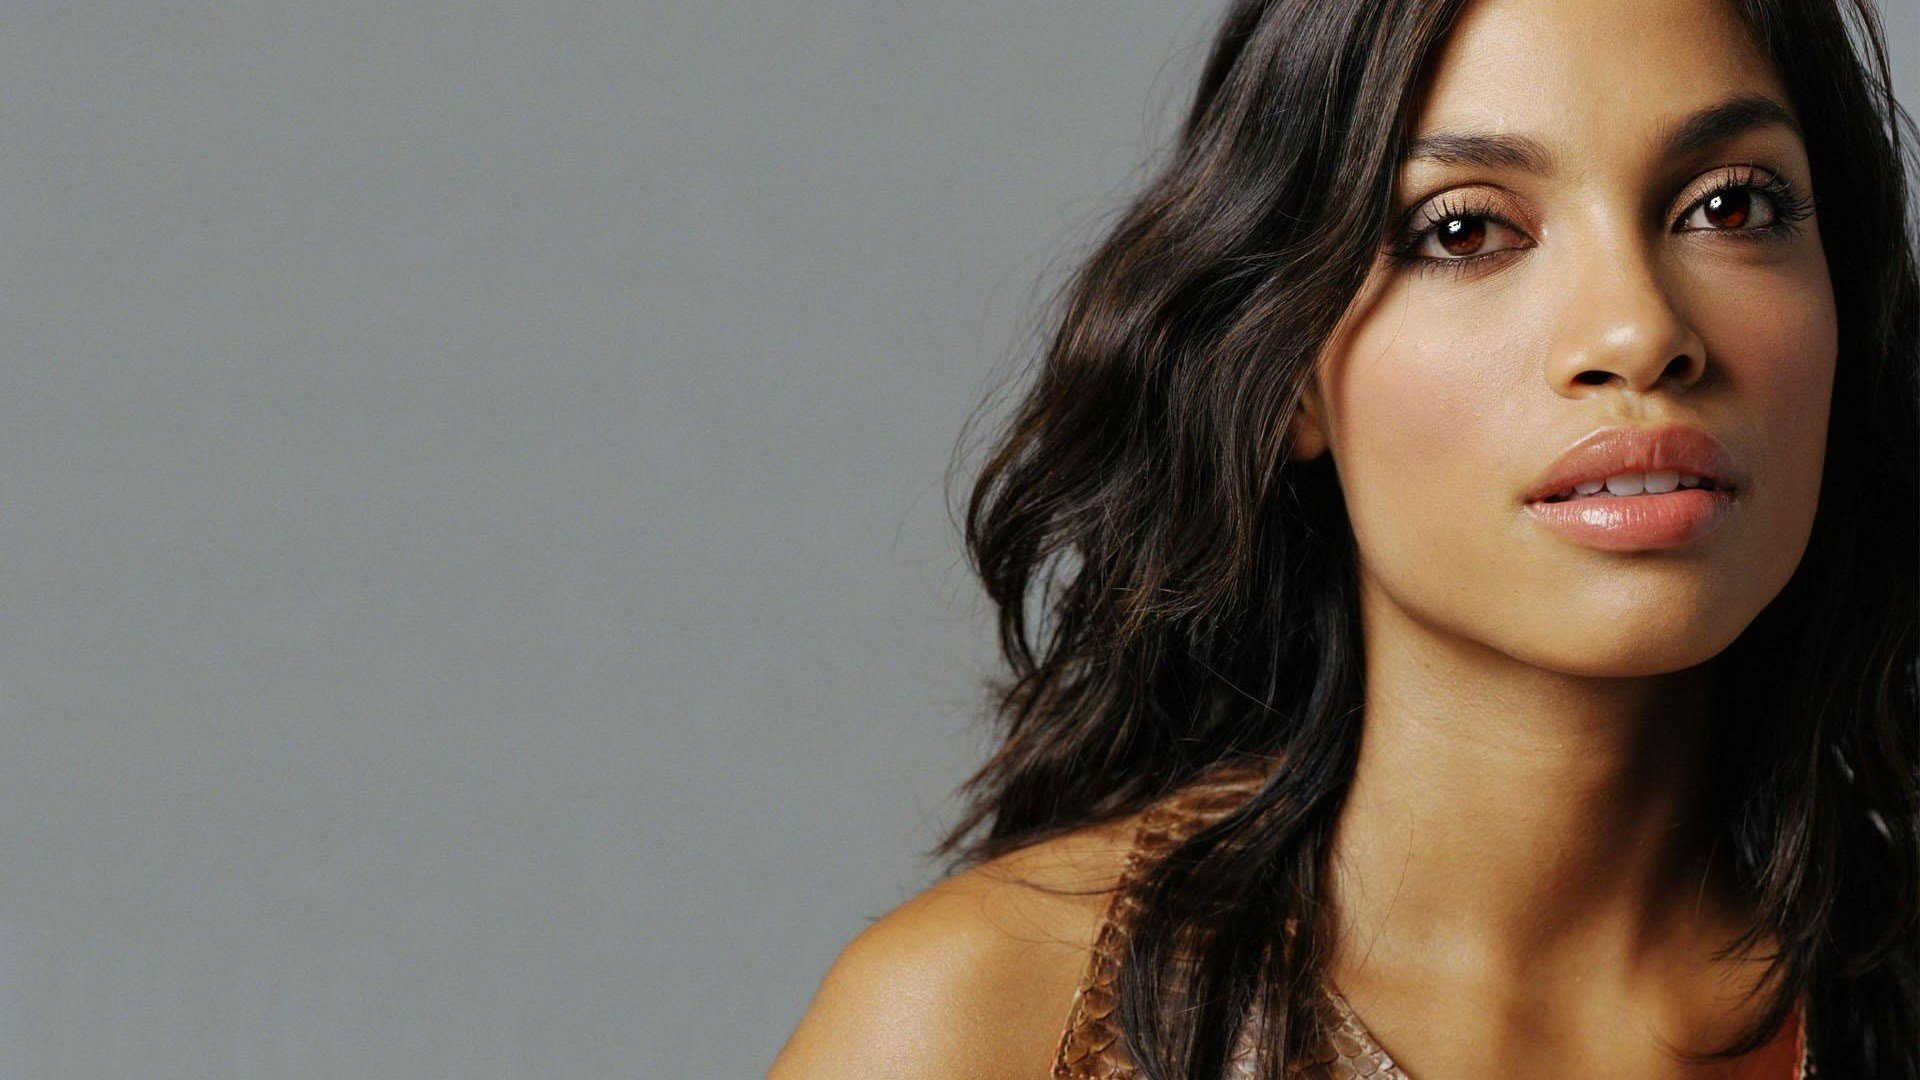 Awesome Rosario Dawson free wallpaper ID:381005 for full hd 1920x1080 computer